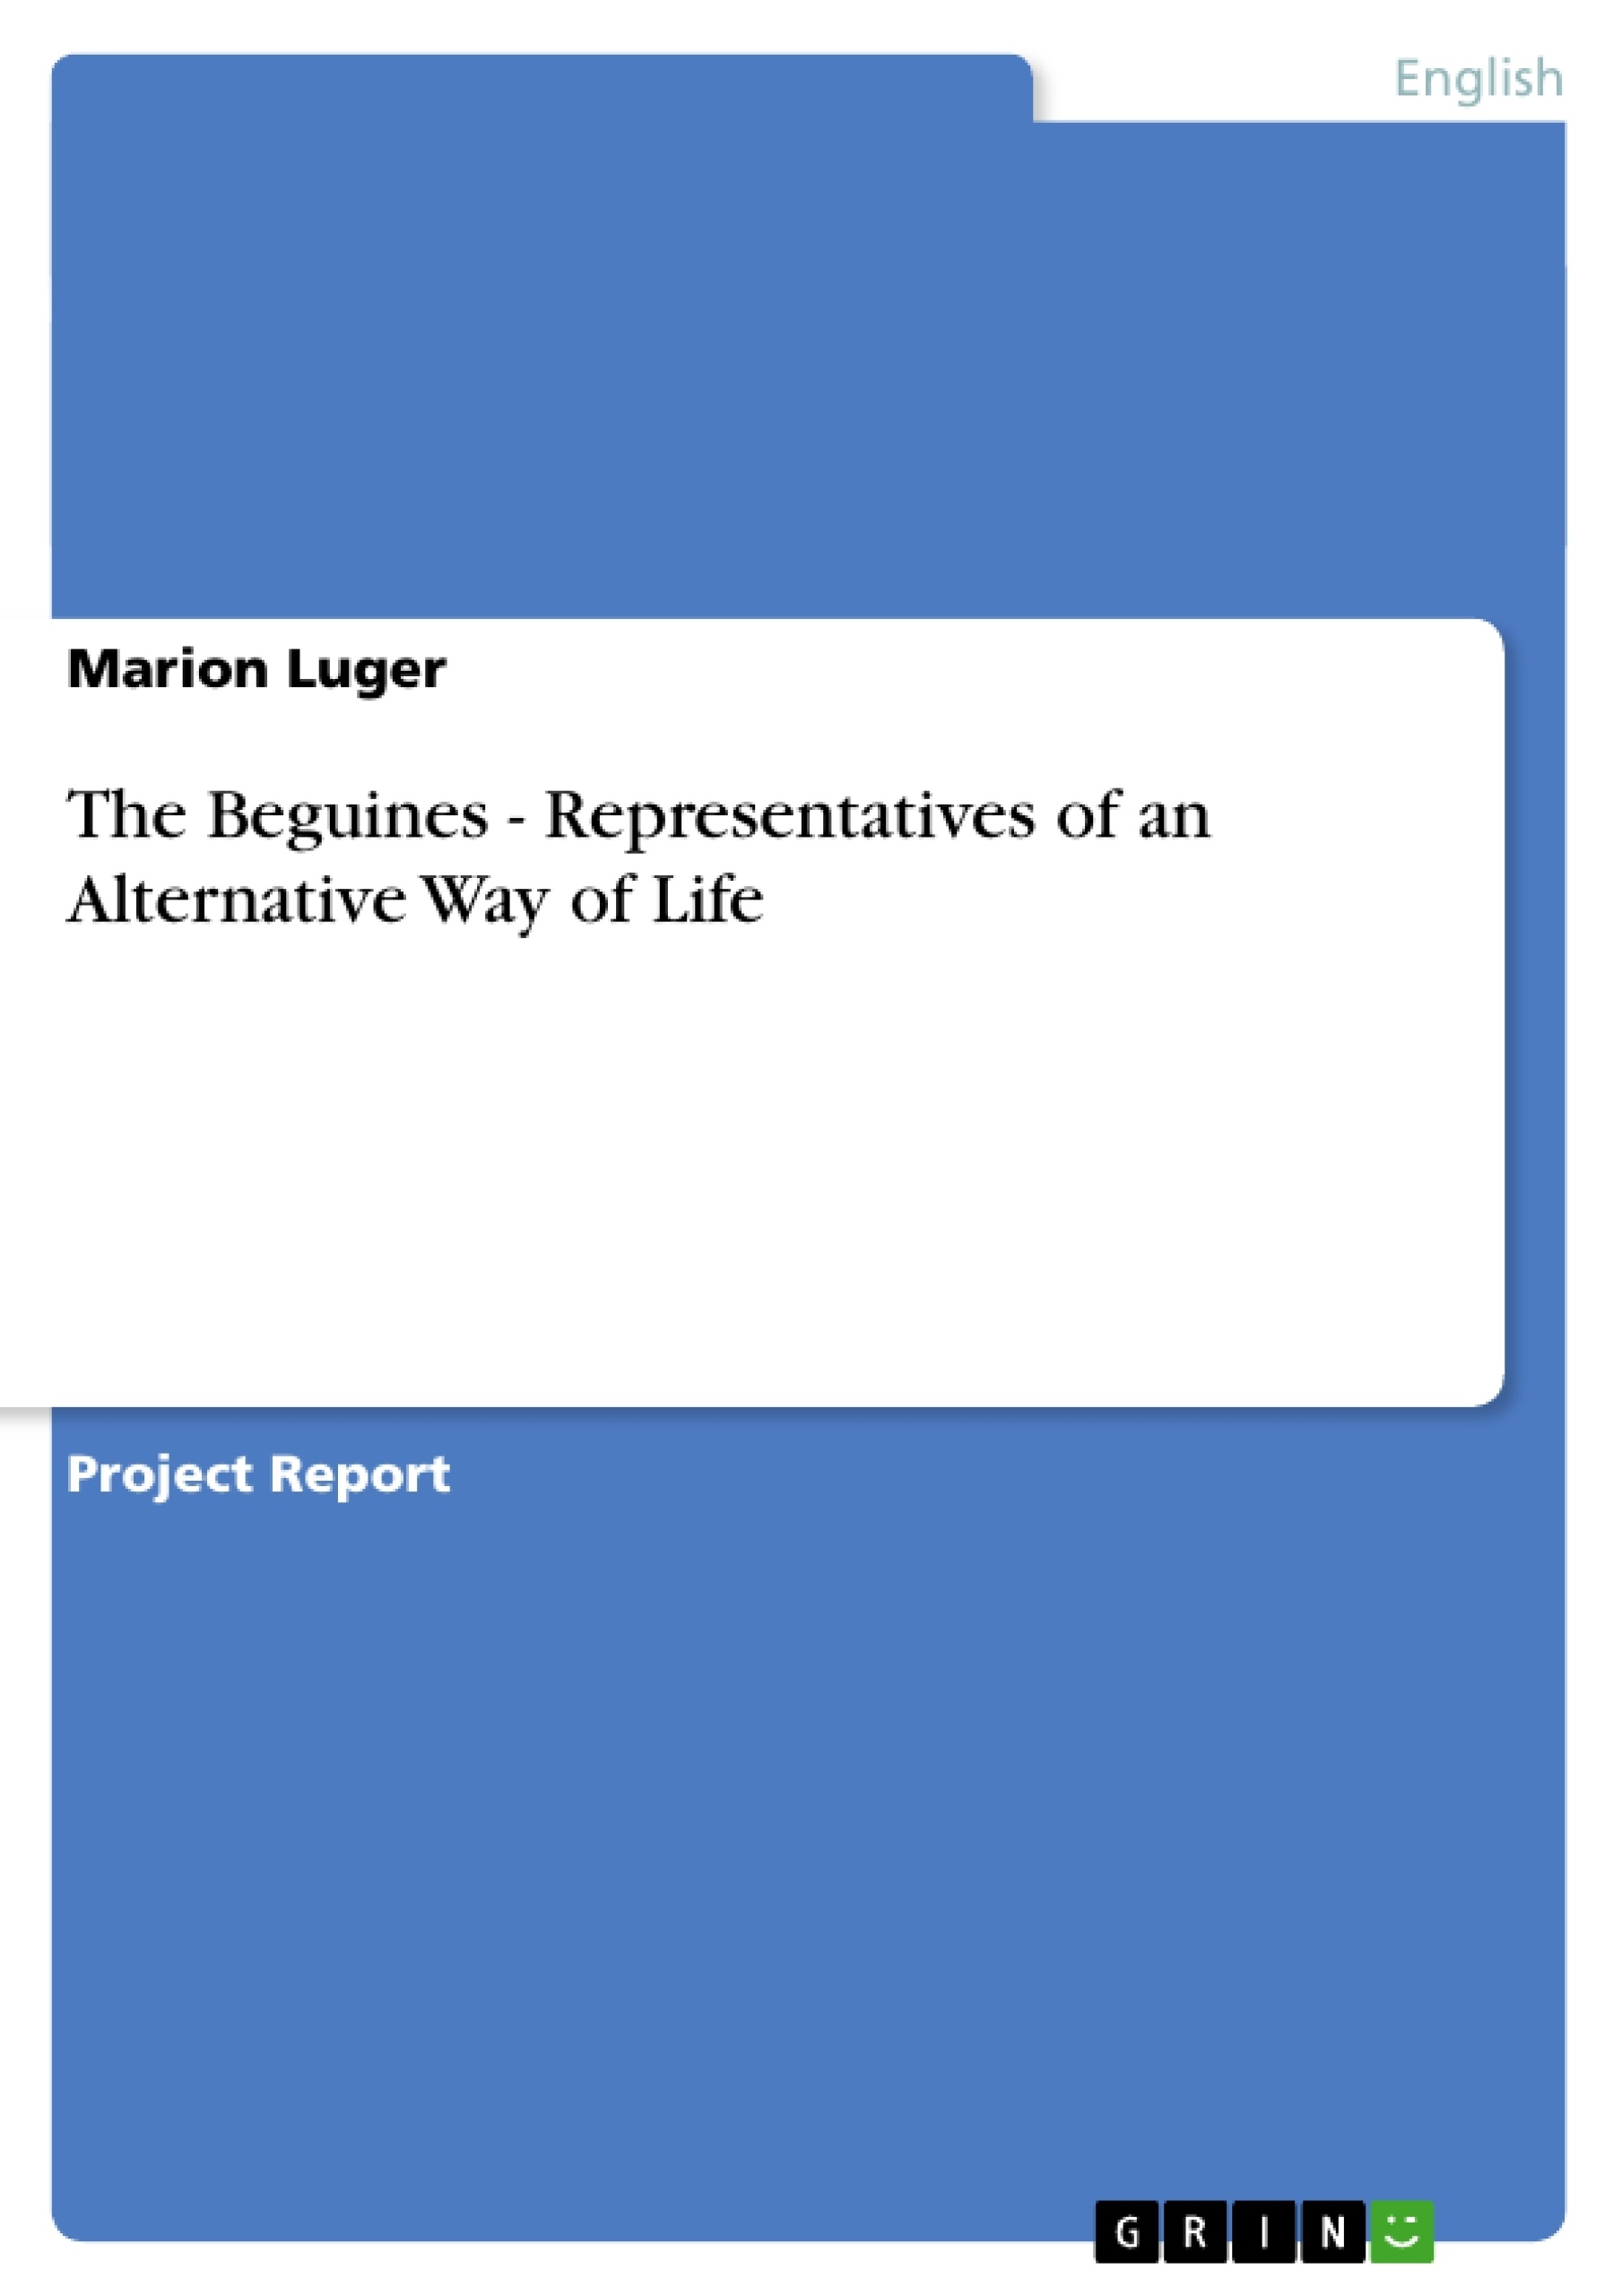 Title: The Beguines - Representatives of an Alternative Way of Life